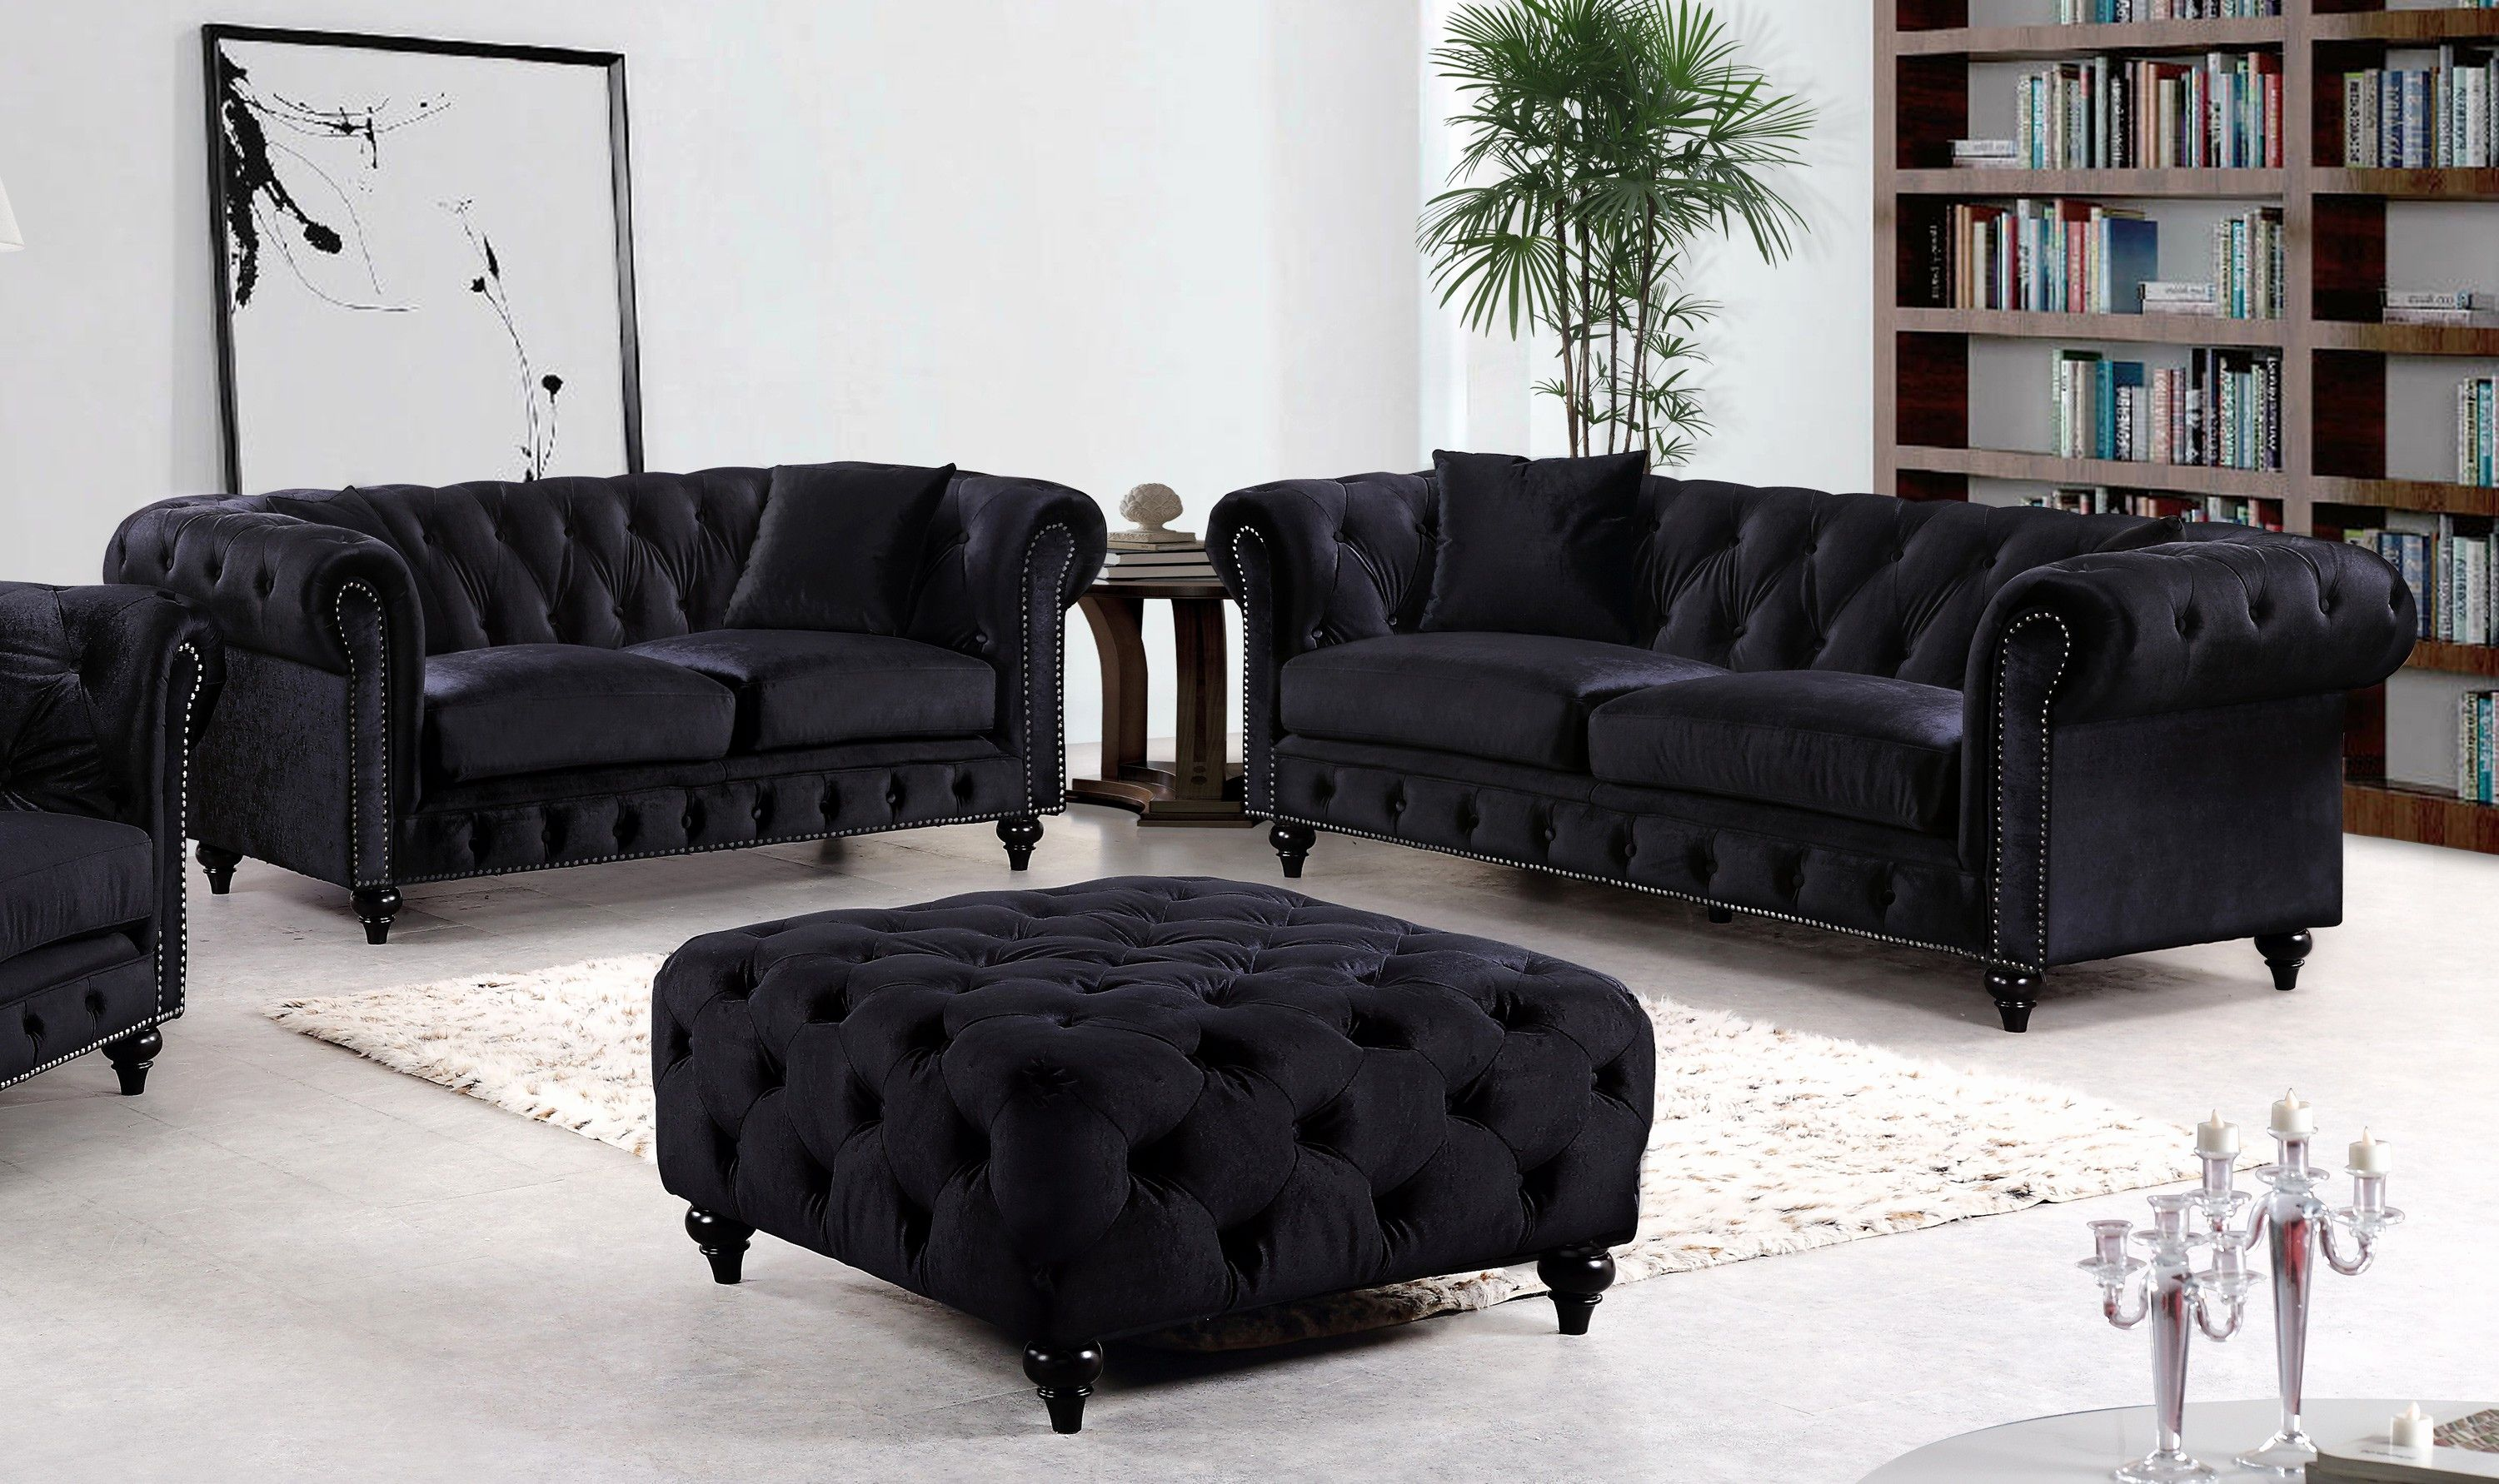 Black velvet tufted sofa picture black velvet tufted sofa inspirational black tufted sofa incredible picture design square sofas leather